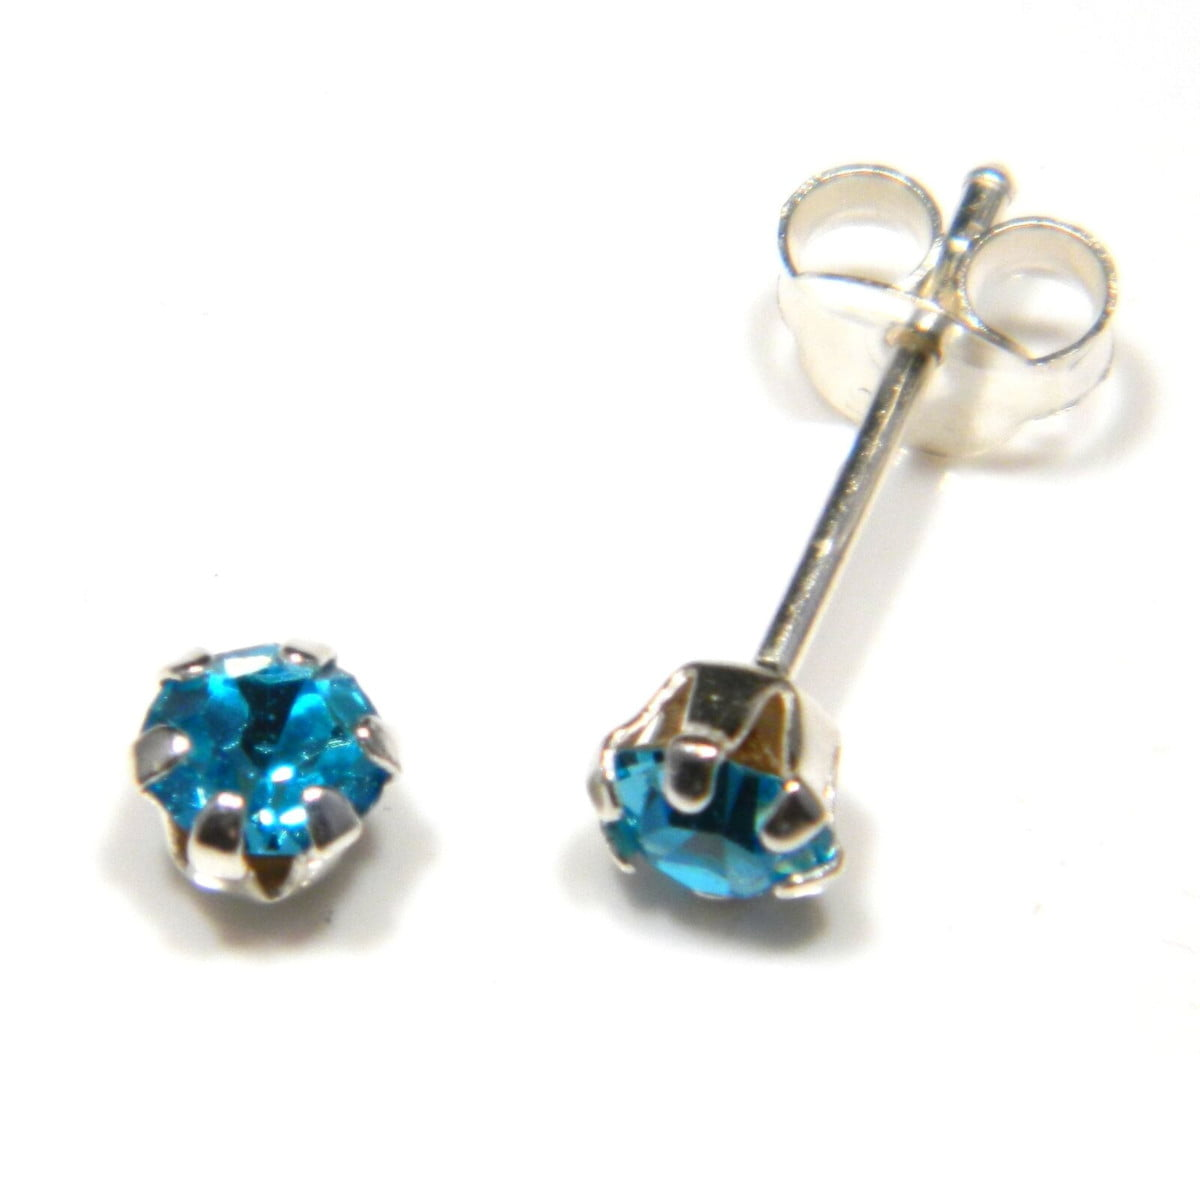 4 mm aqua blue coloured crystal stud round solitaire earrings in sterling silver